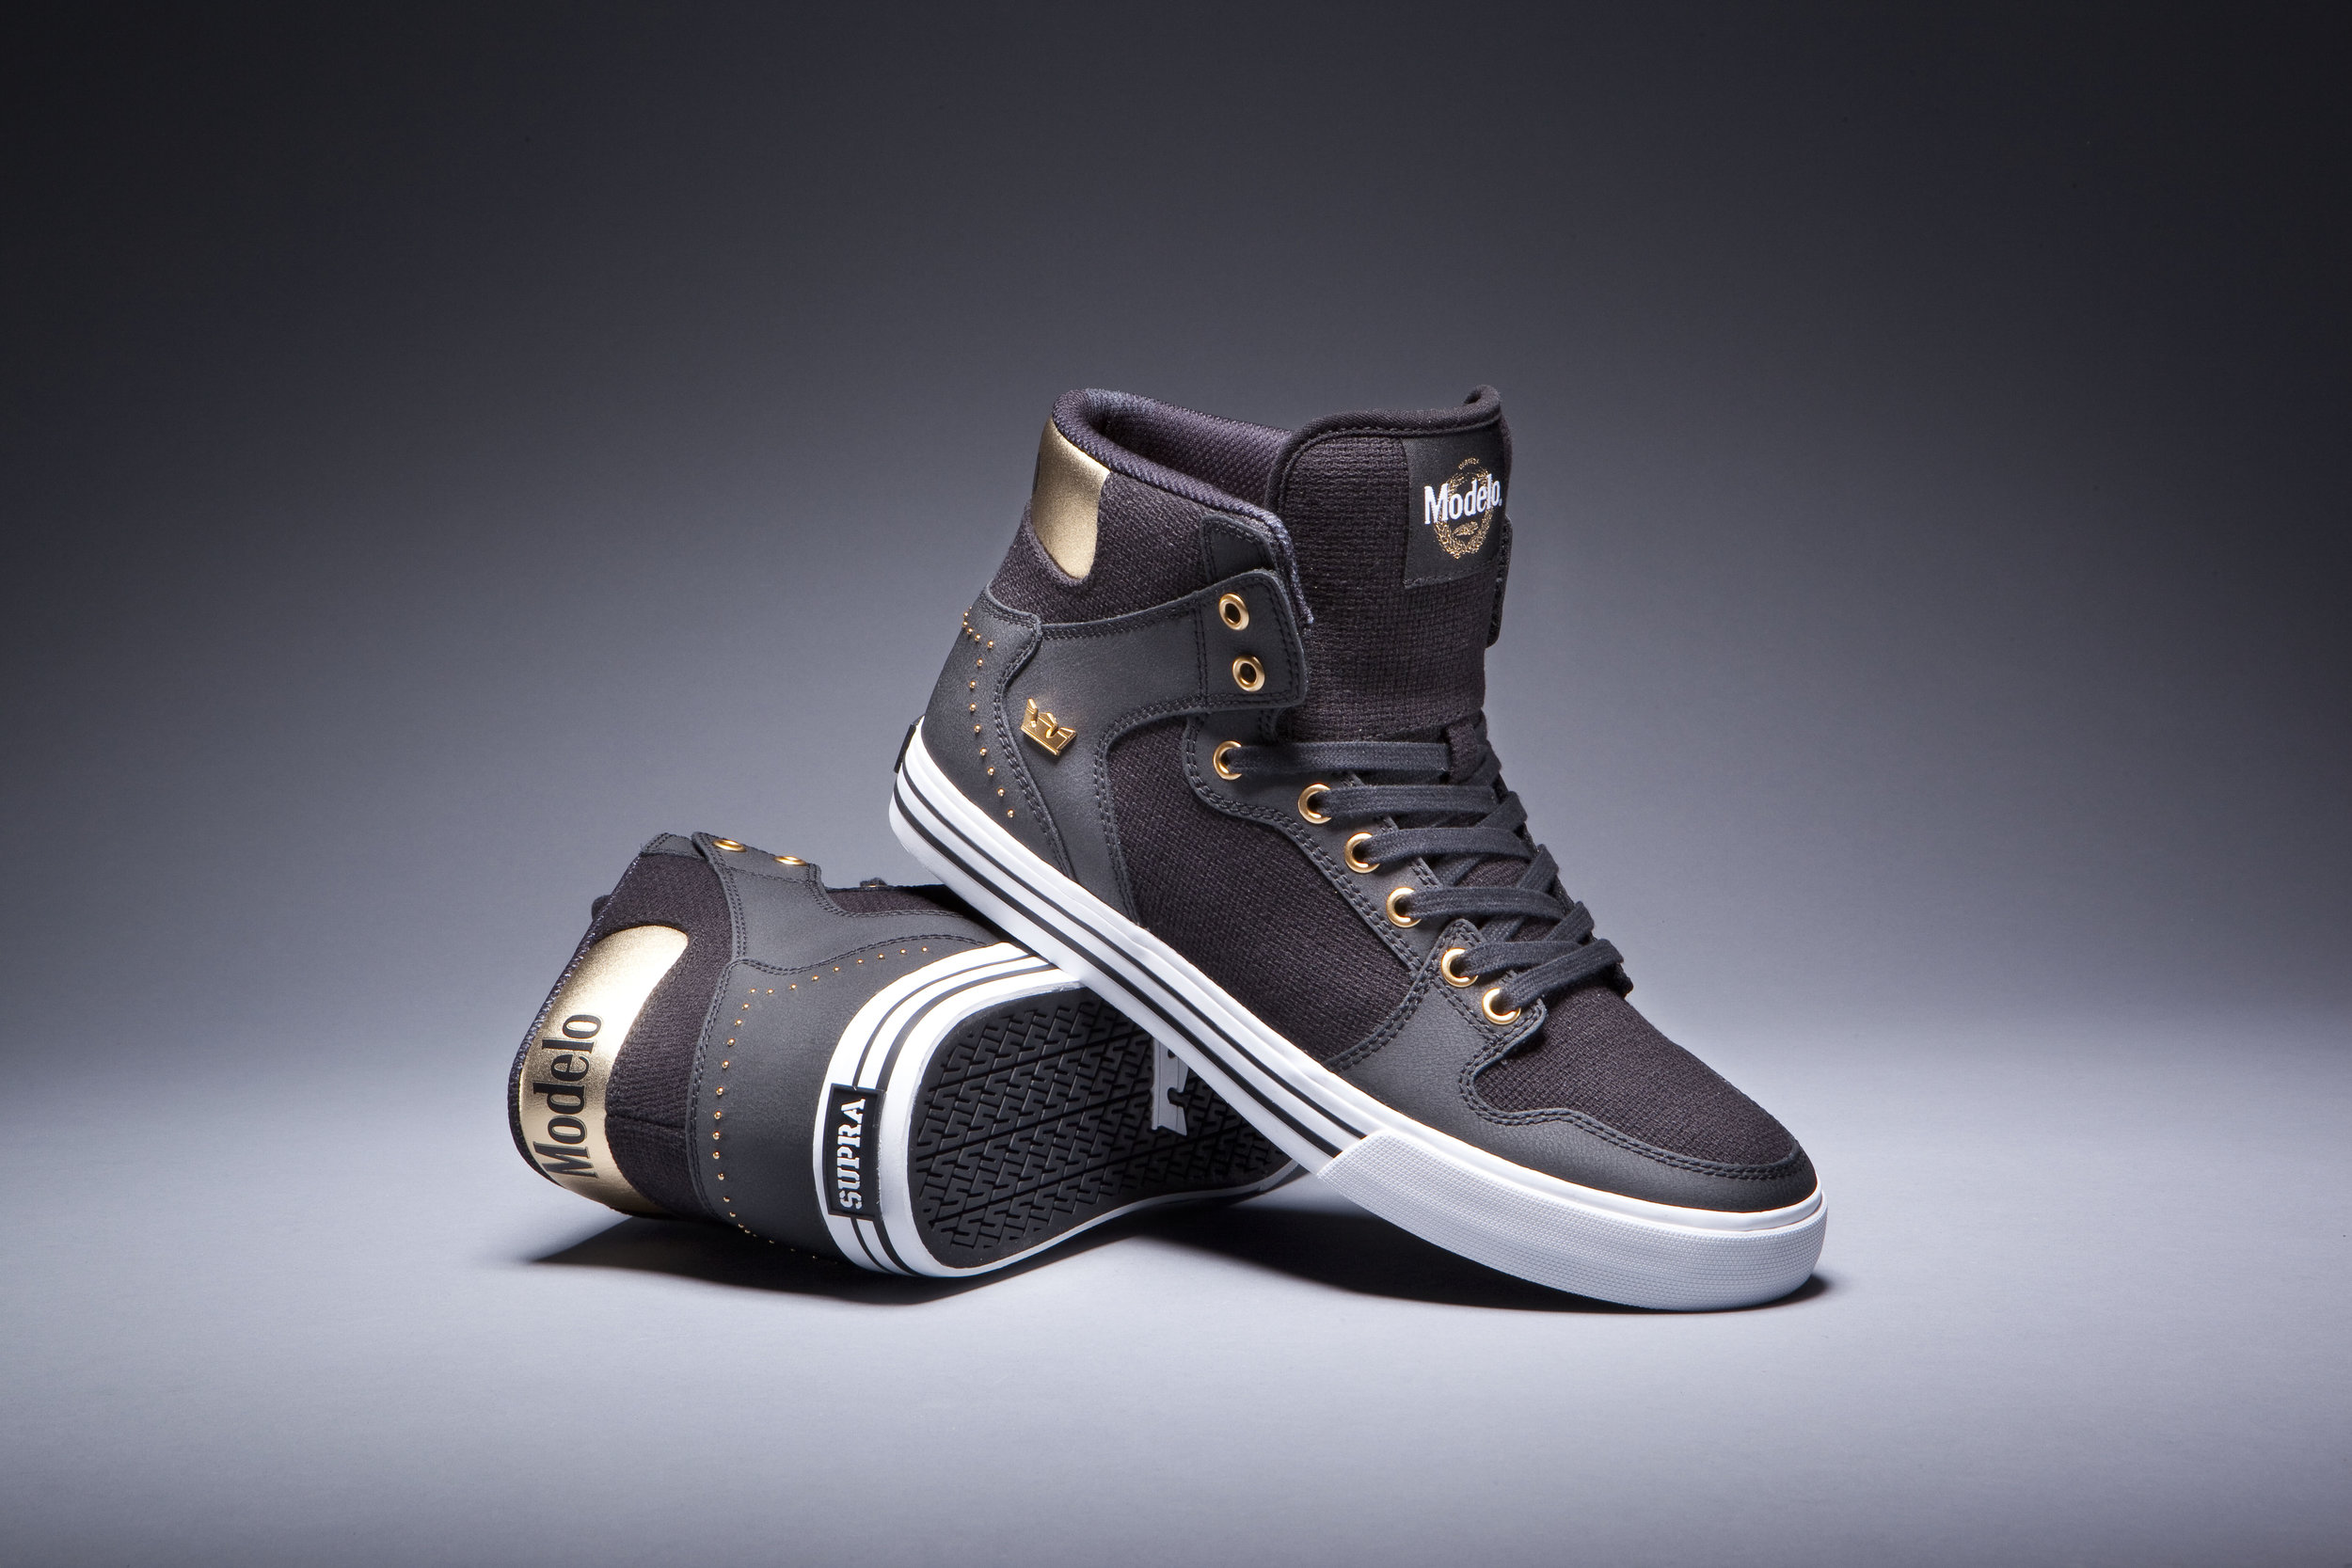 Modelo Supra Collaboration